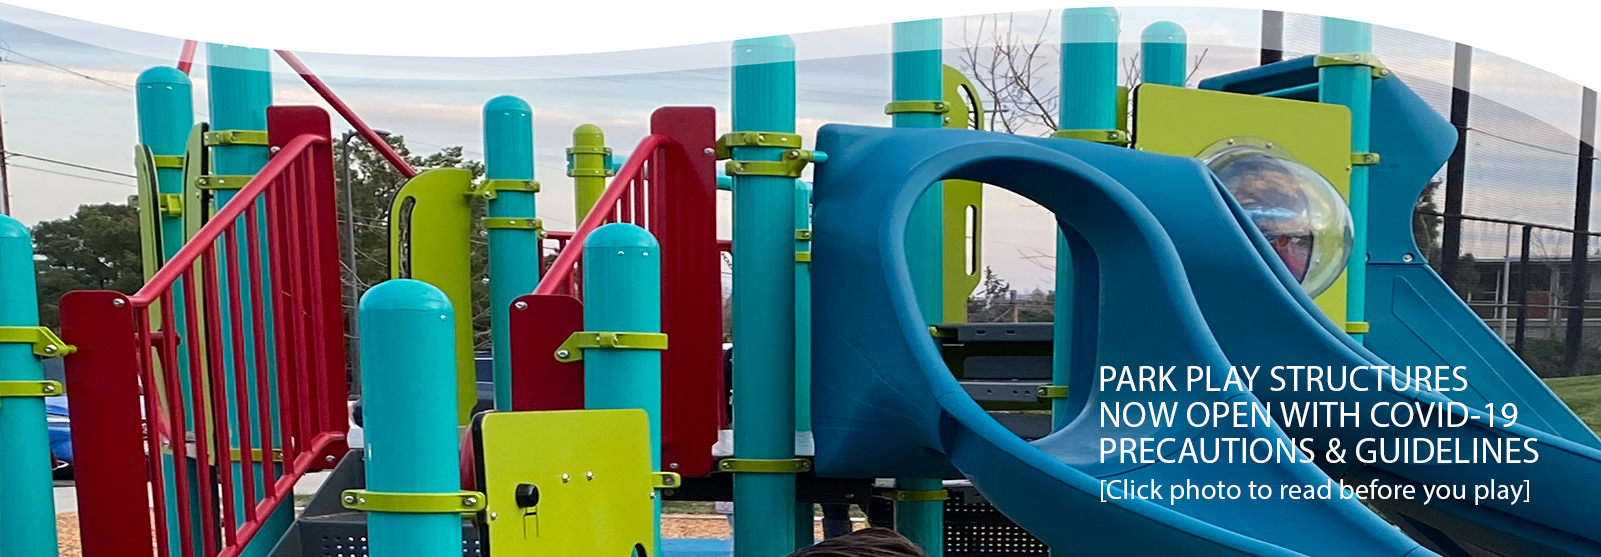 All Abilities Park Play Structure at Pleasant Oaks Park